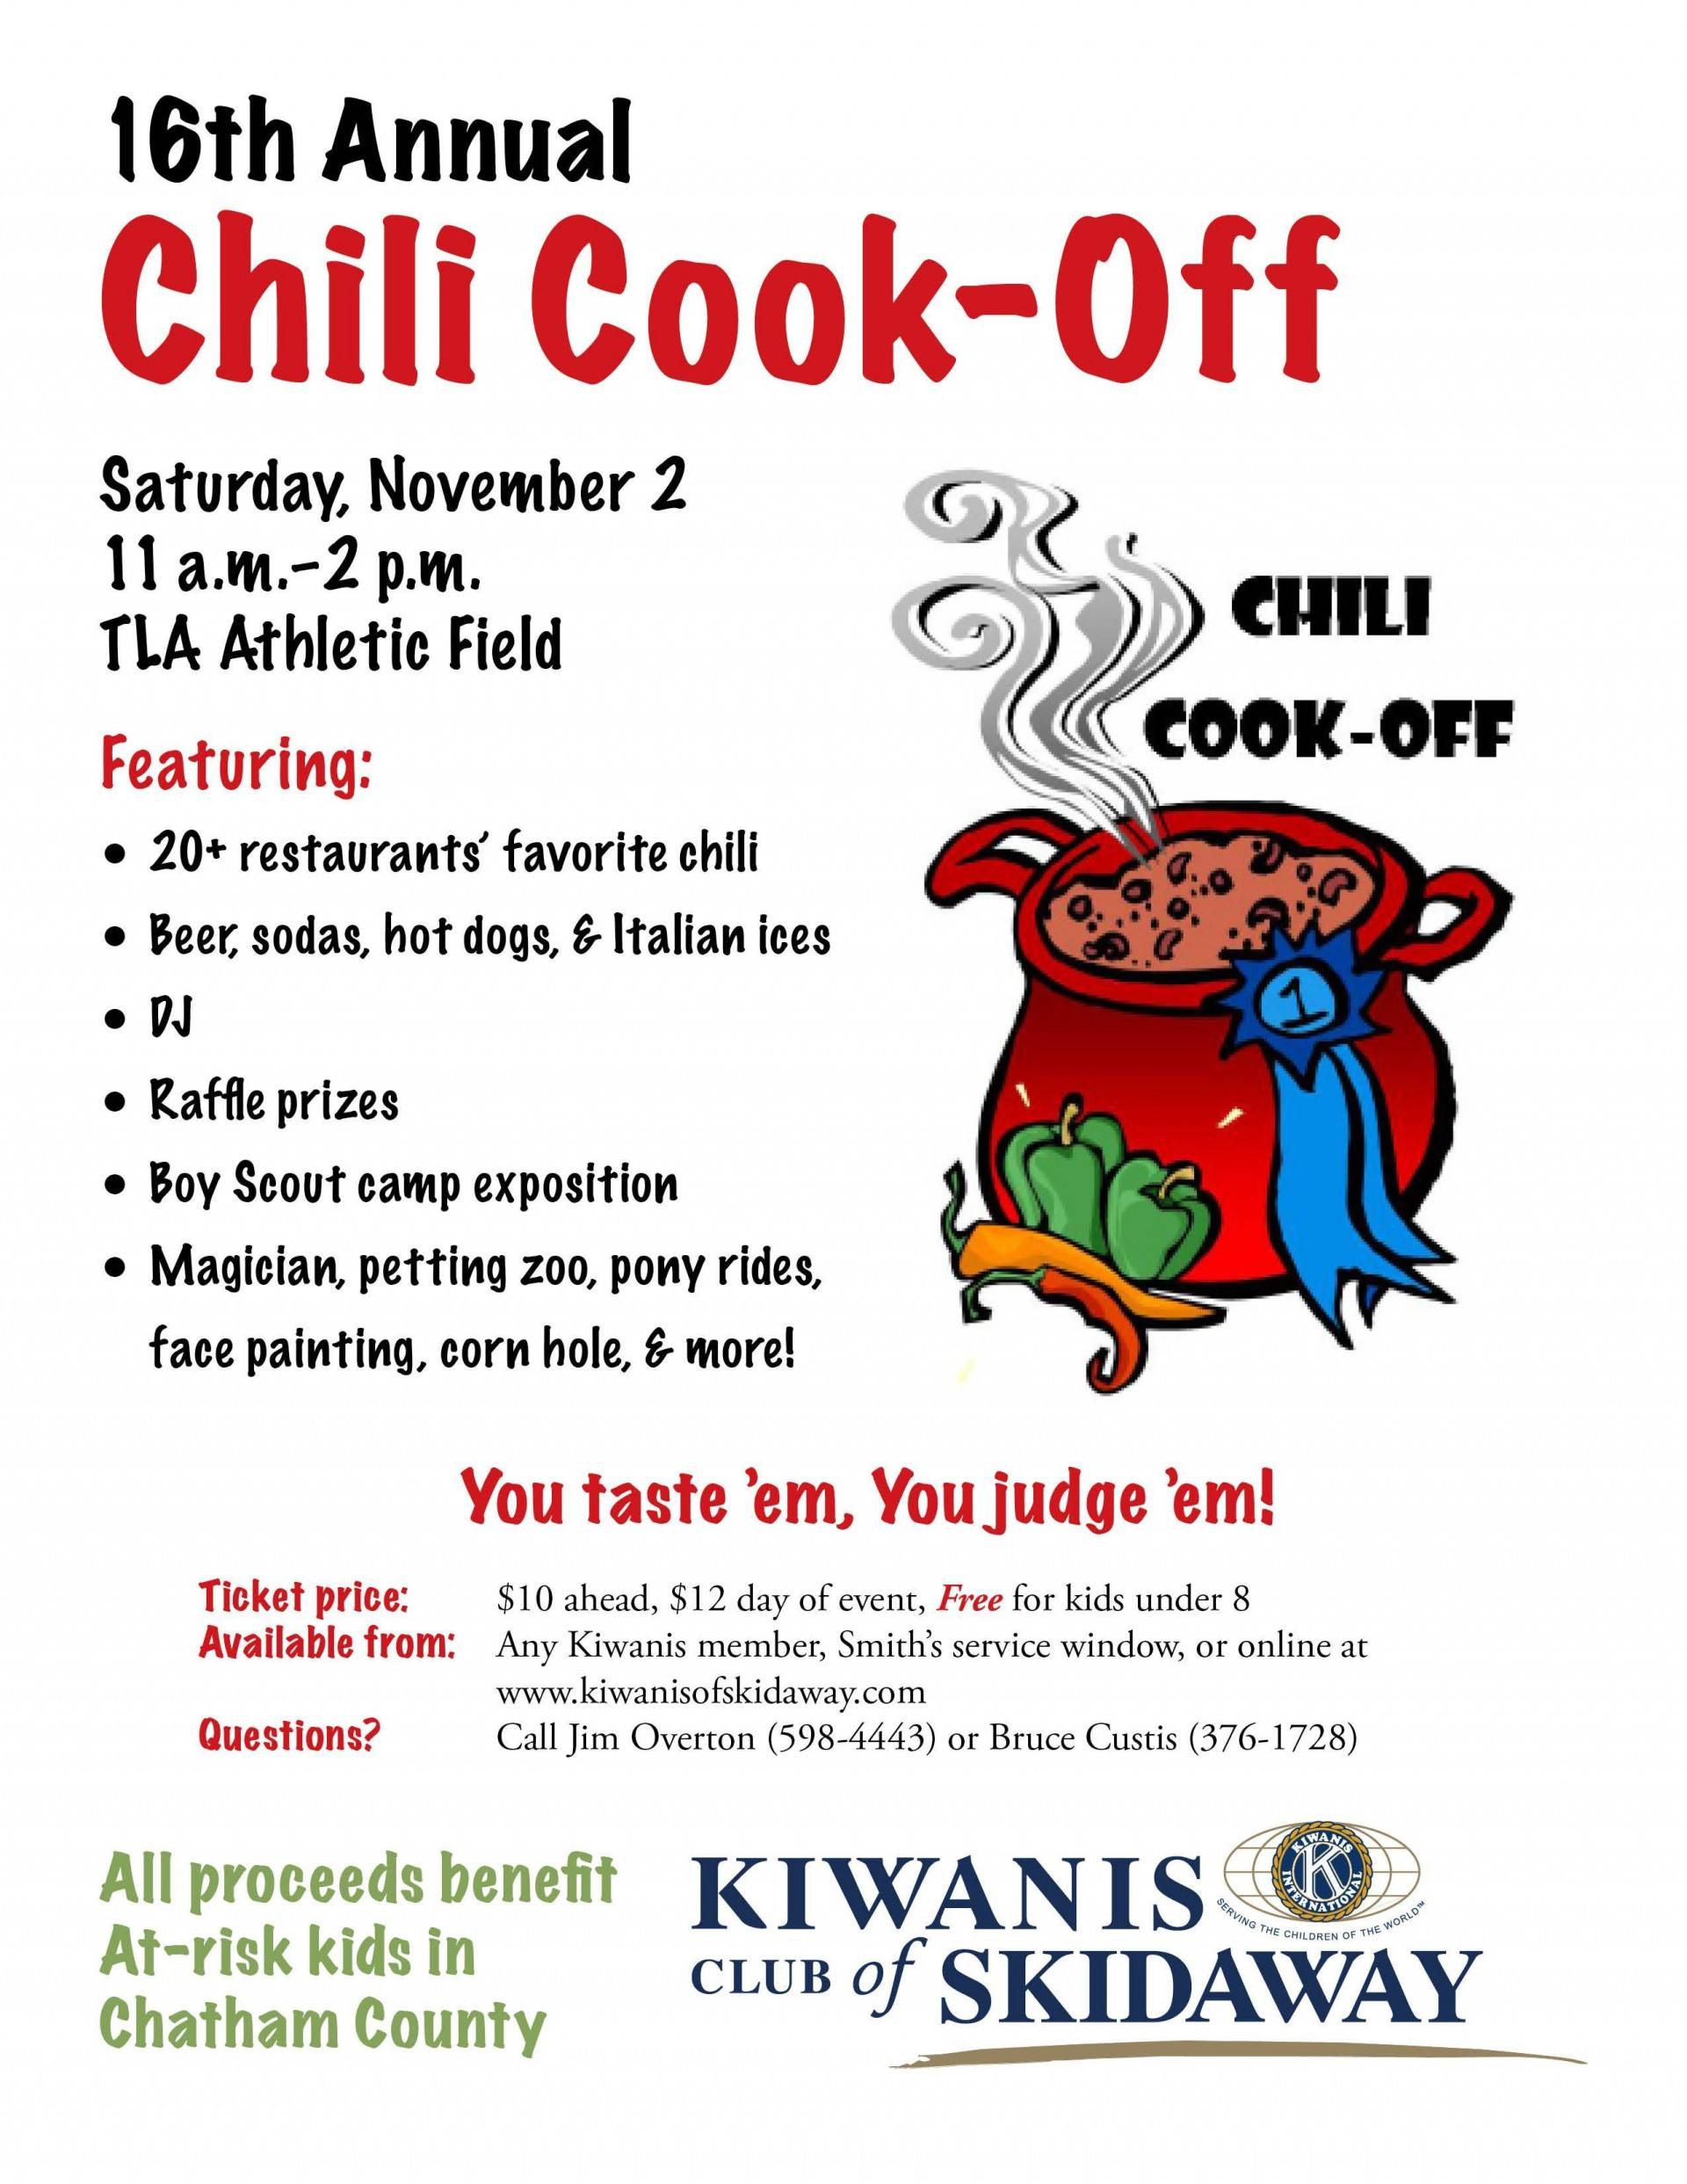 007 Stunning Chili Cook Off Flyer Template Example  Halloween Office Powerpoint1920